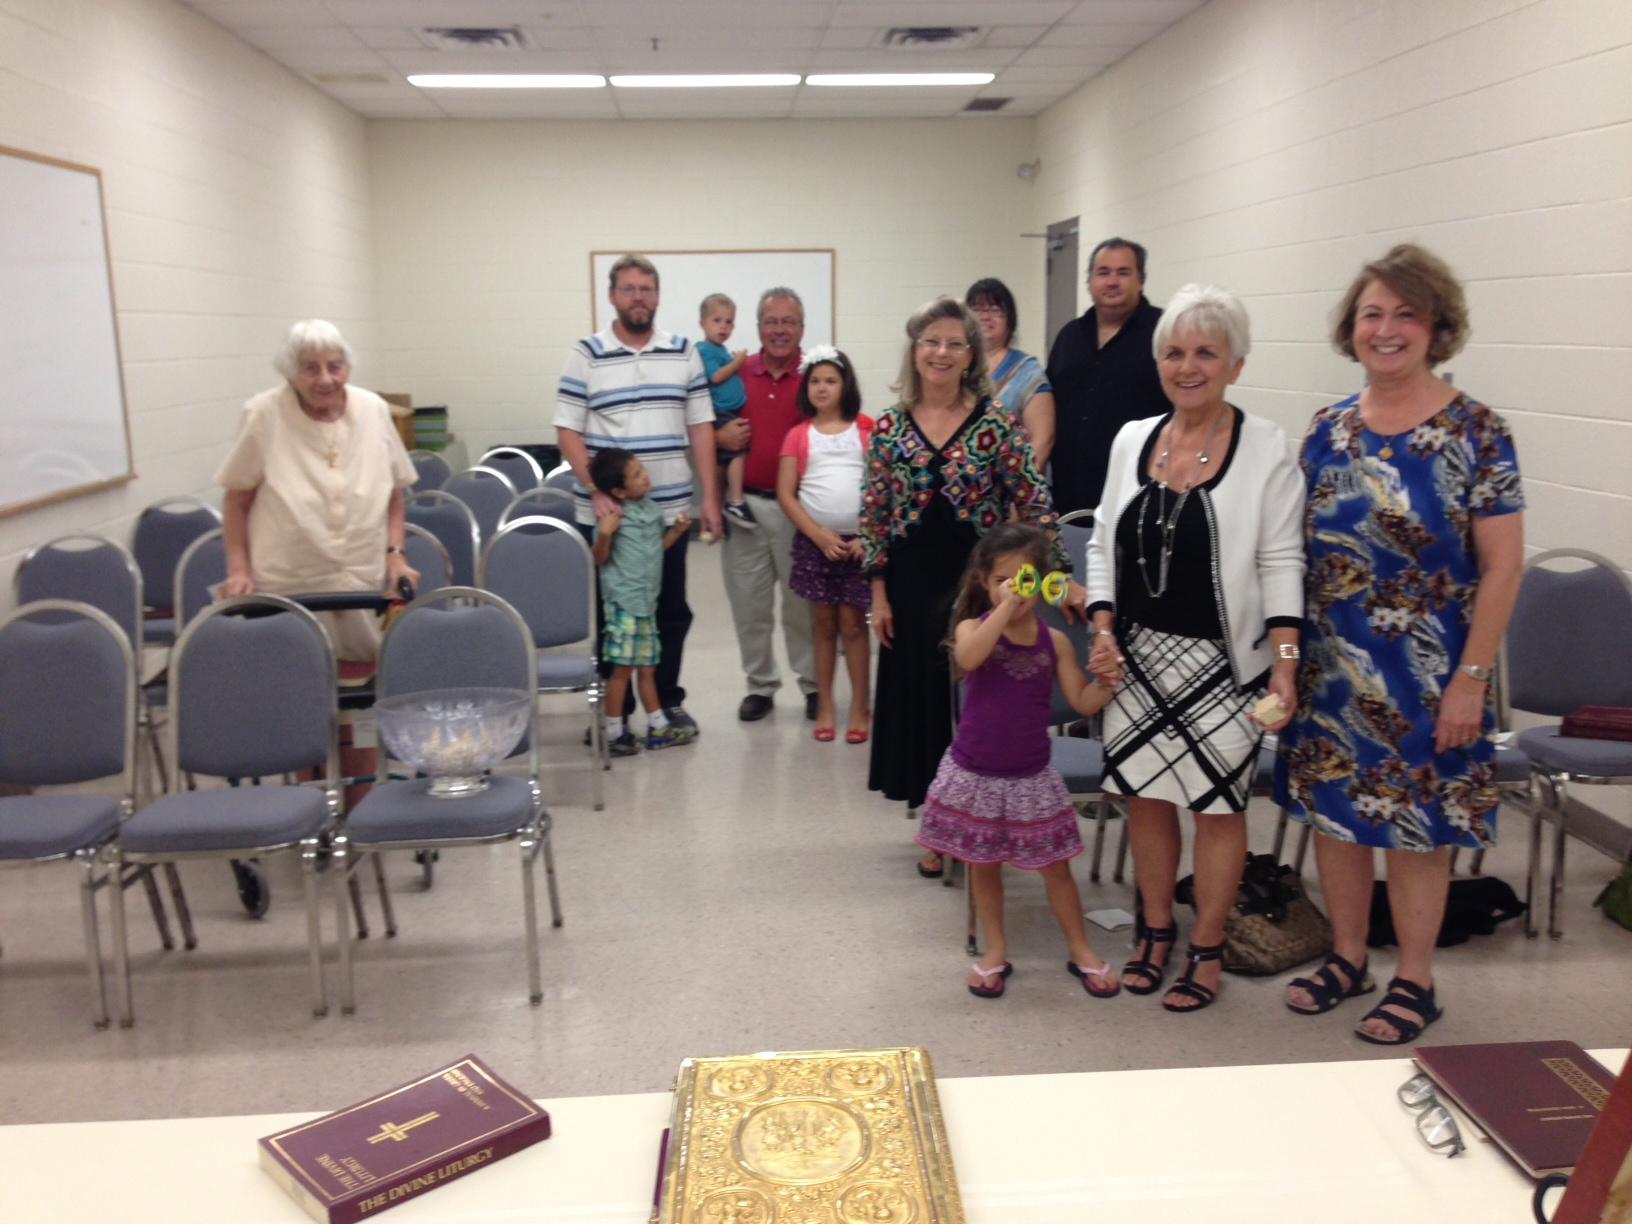 First Liturgy May 17, 2014